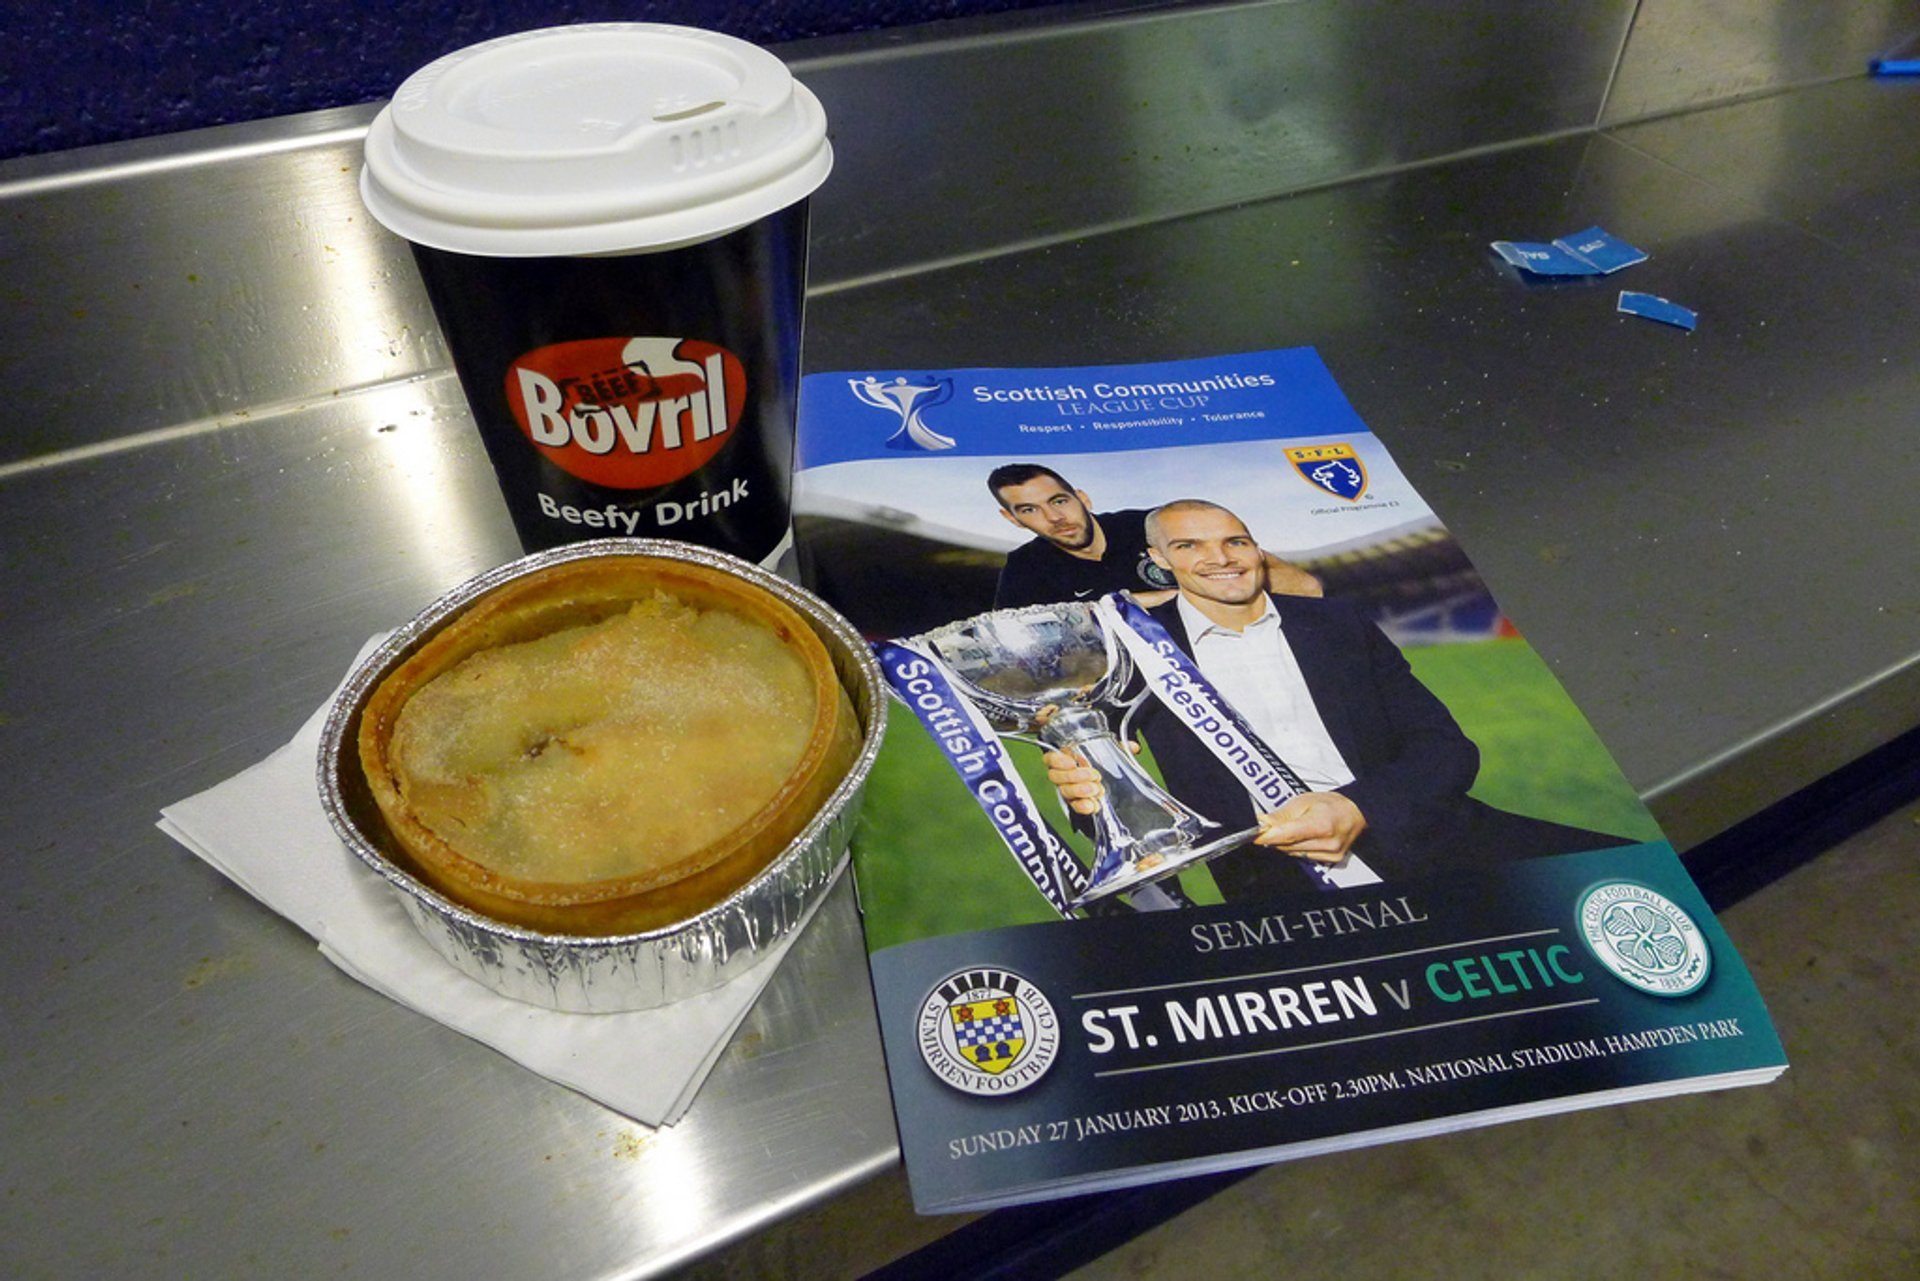 Scotch Pie and Bovril in Scotland - Best Season